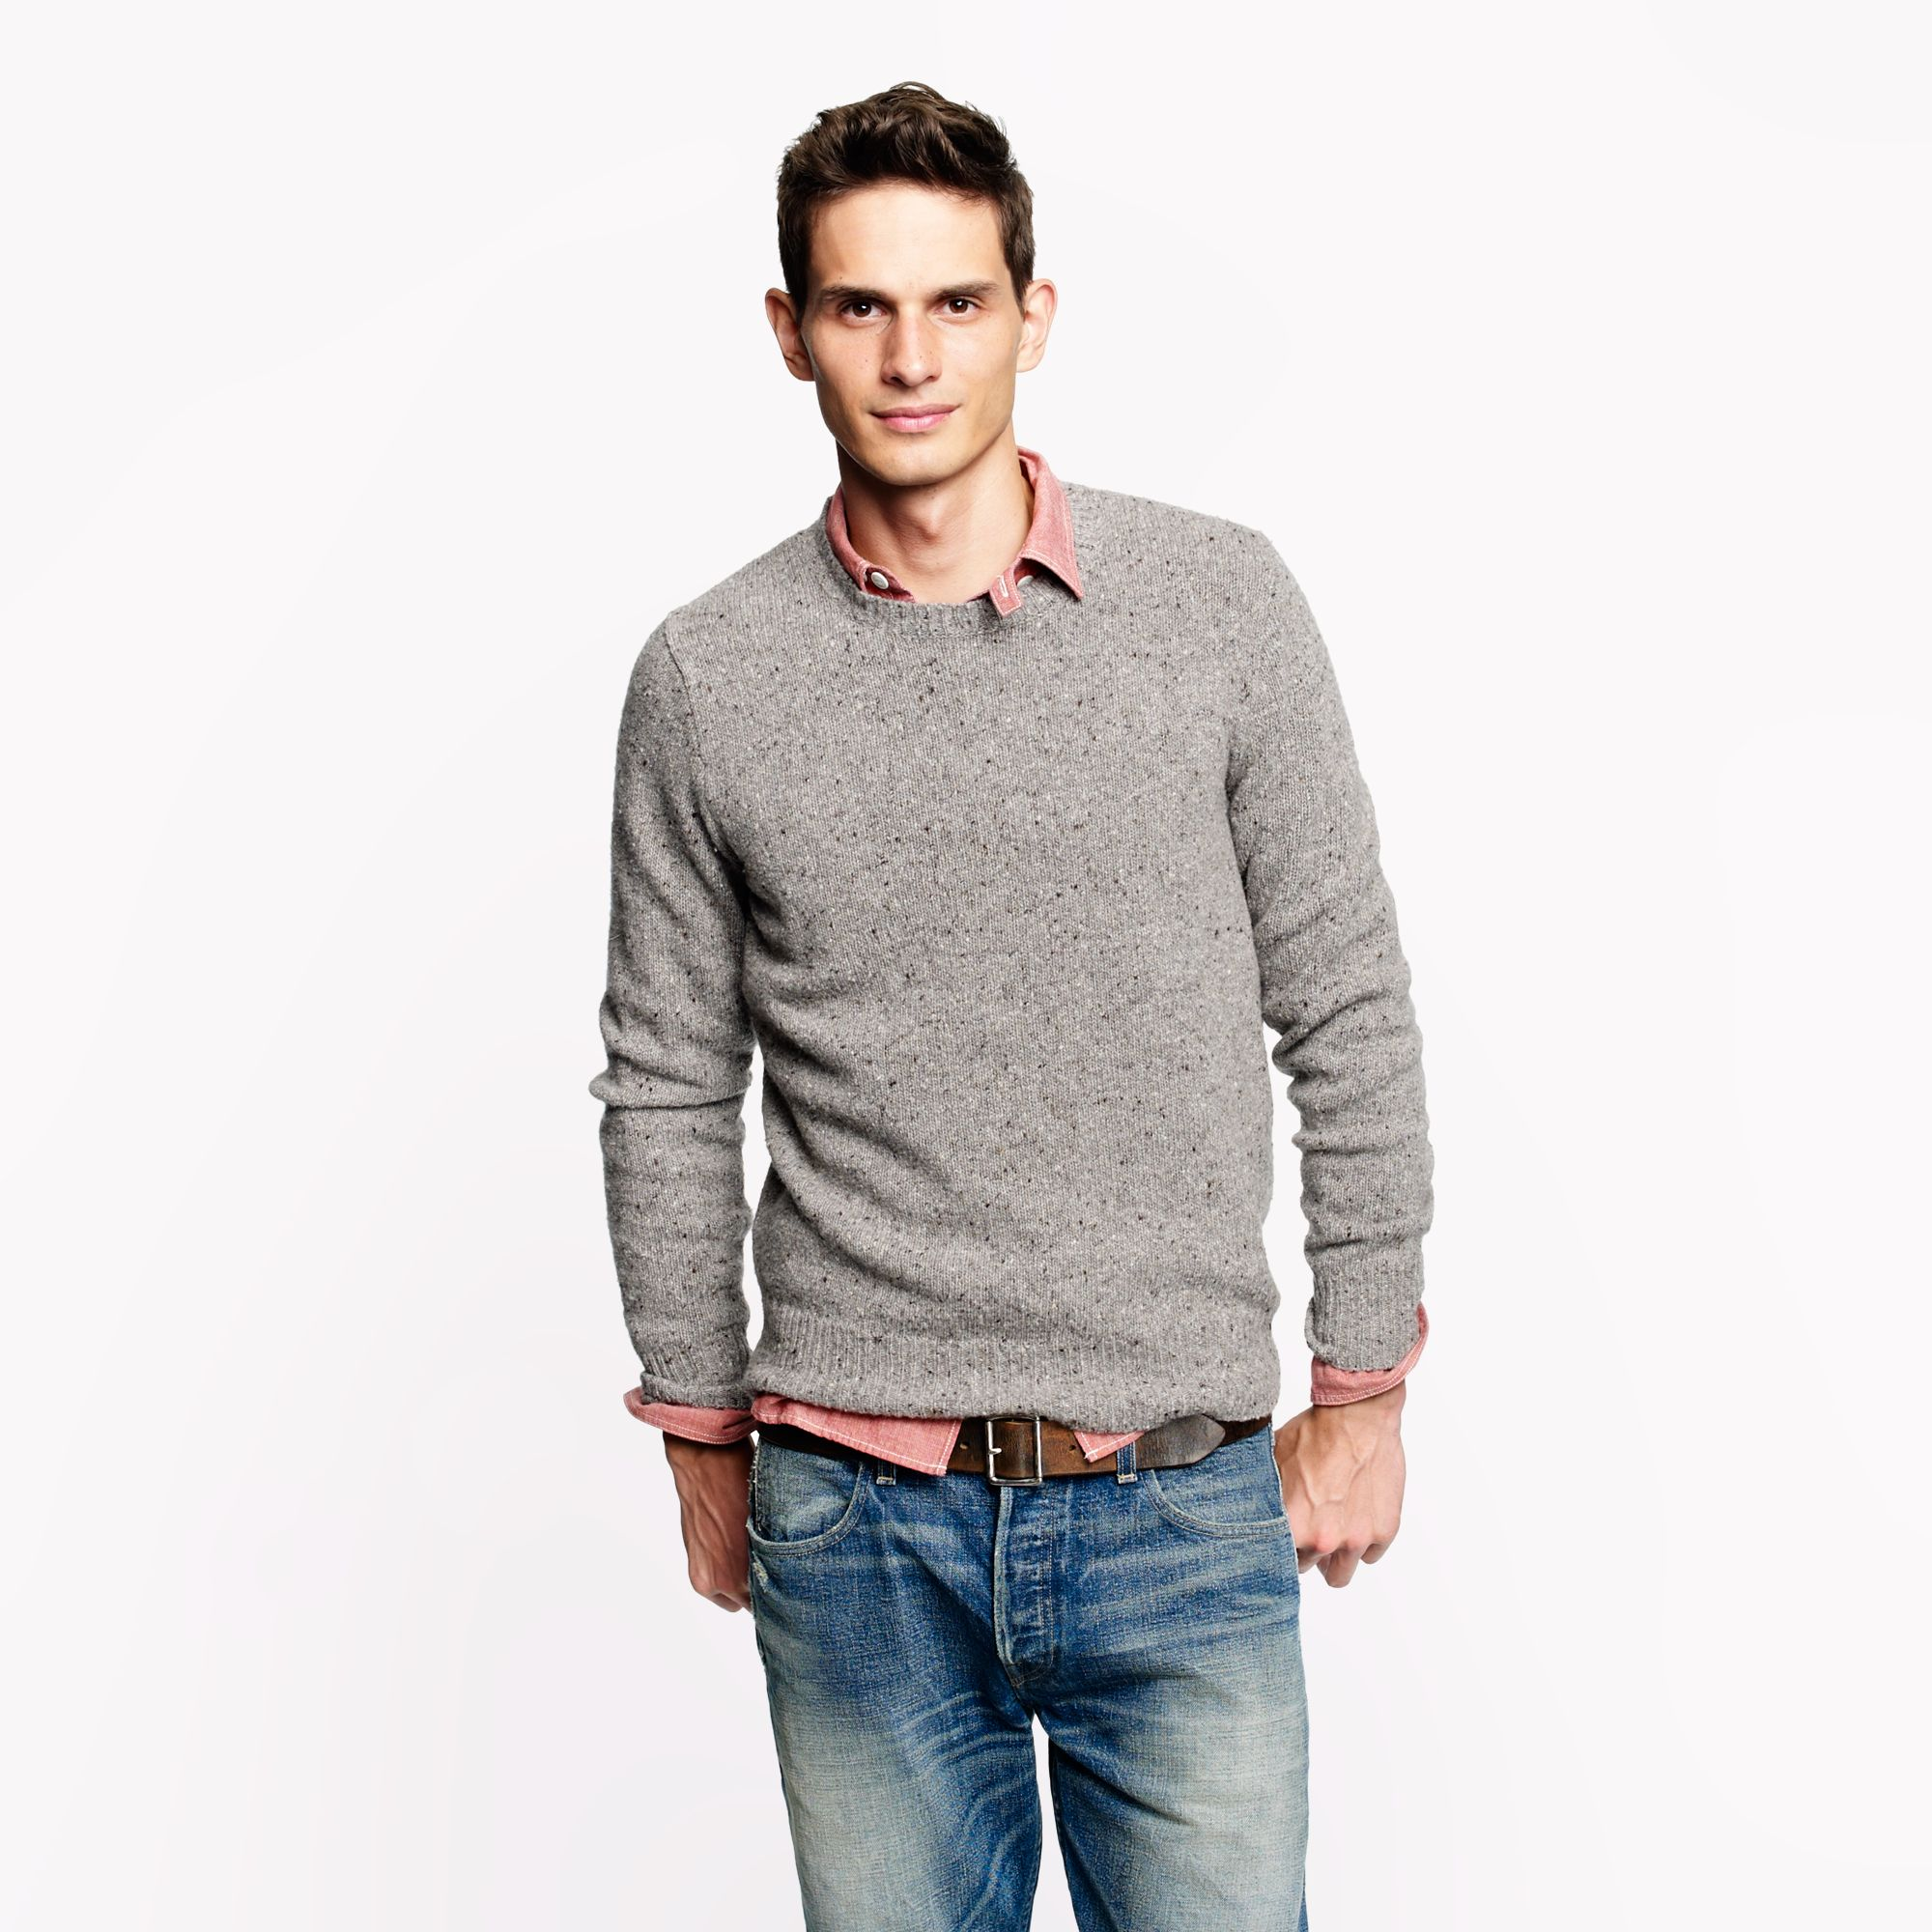 Embrace the intersection of comfort and style with the latest men's sweaters from Gap Factory, featuring classic cardigans and versatile pullovers in a diverse array of colors and sizes.